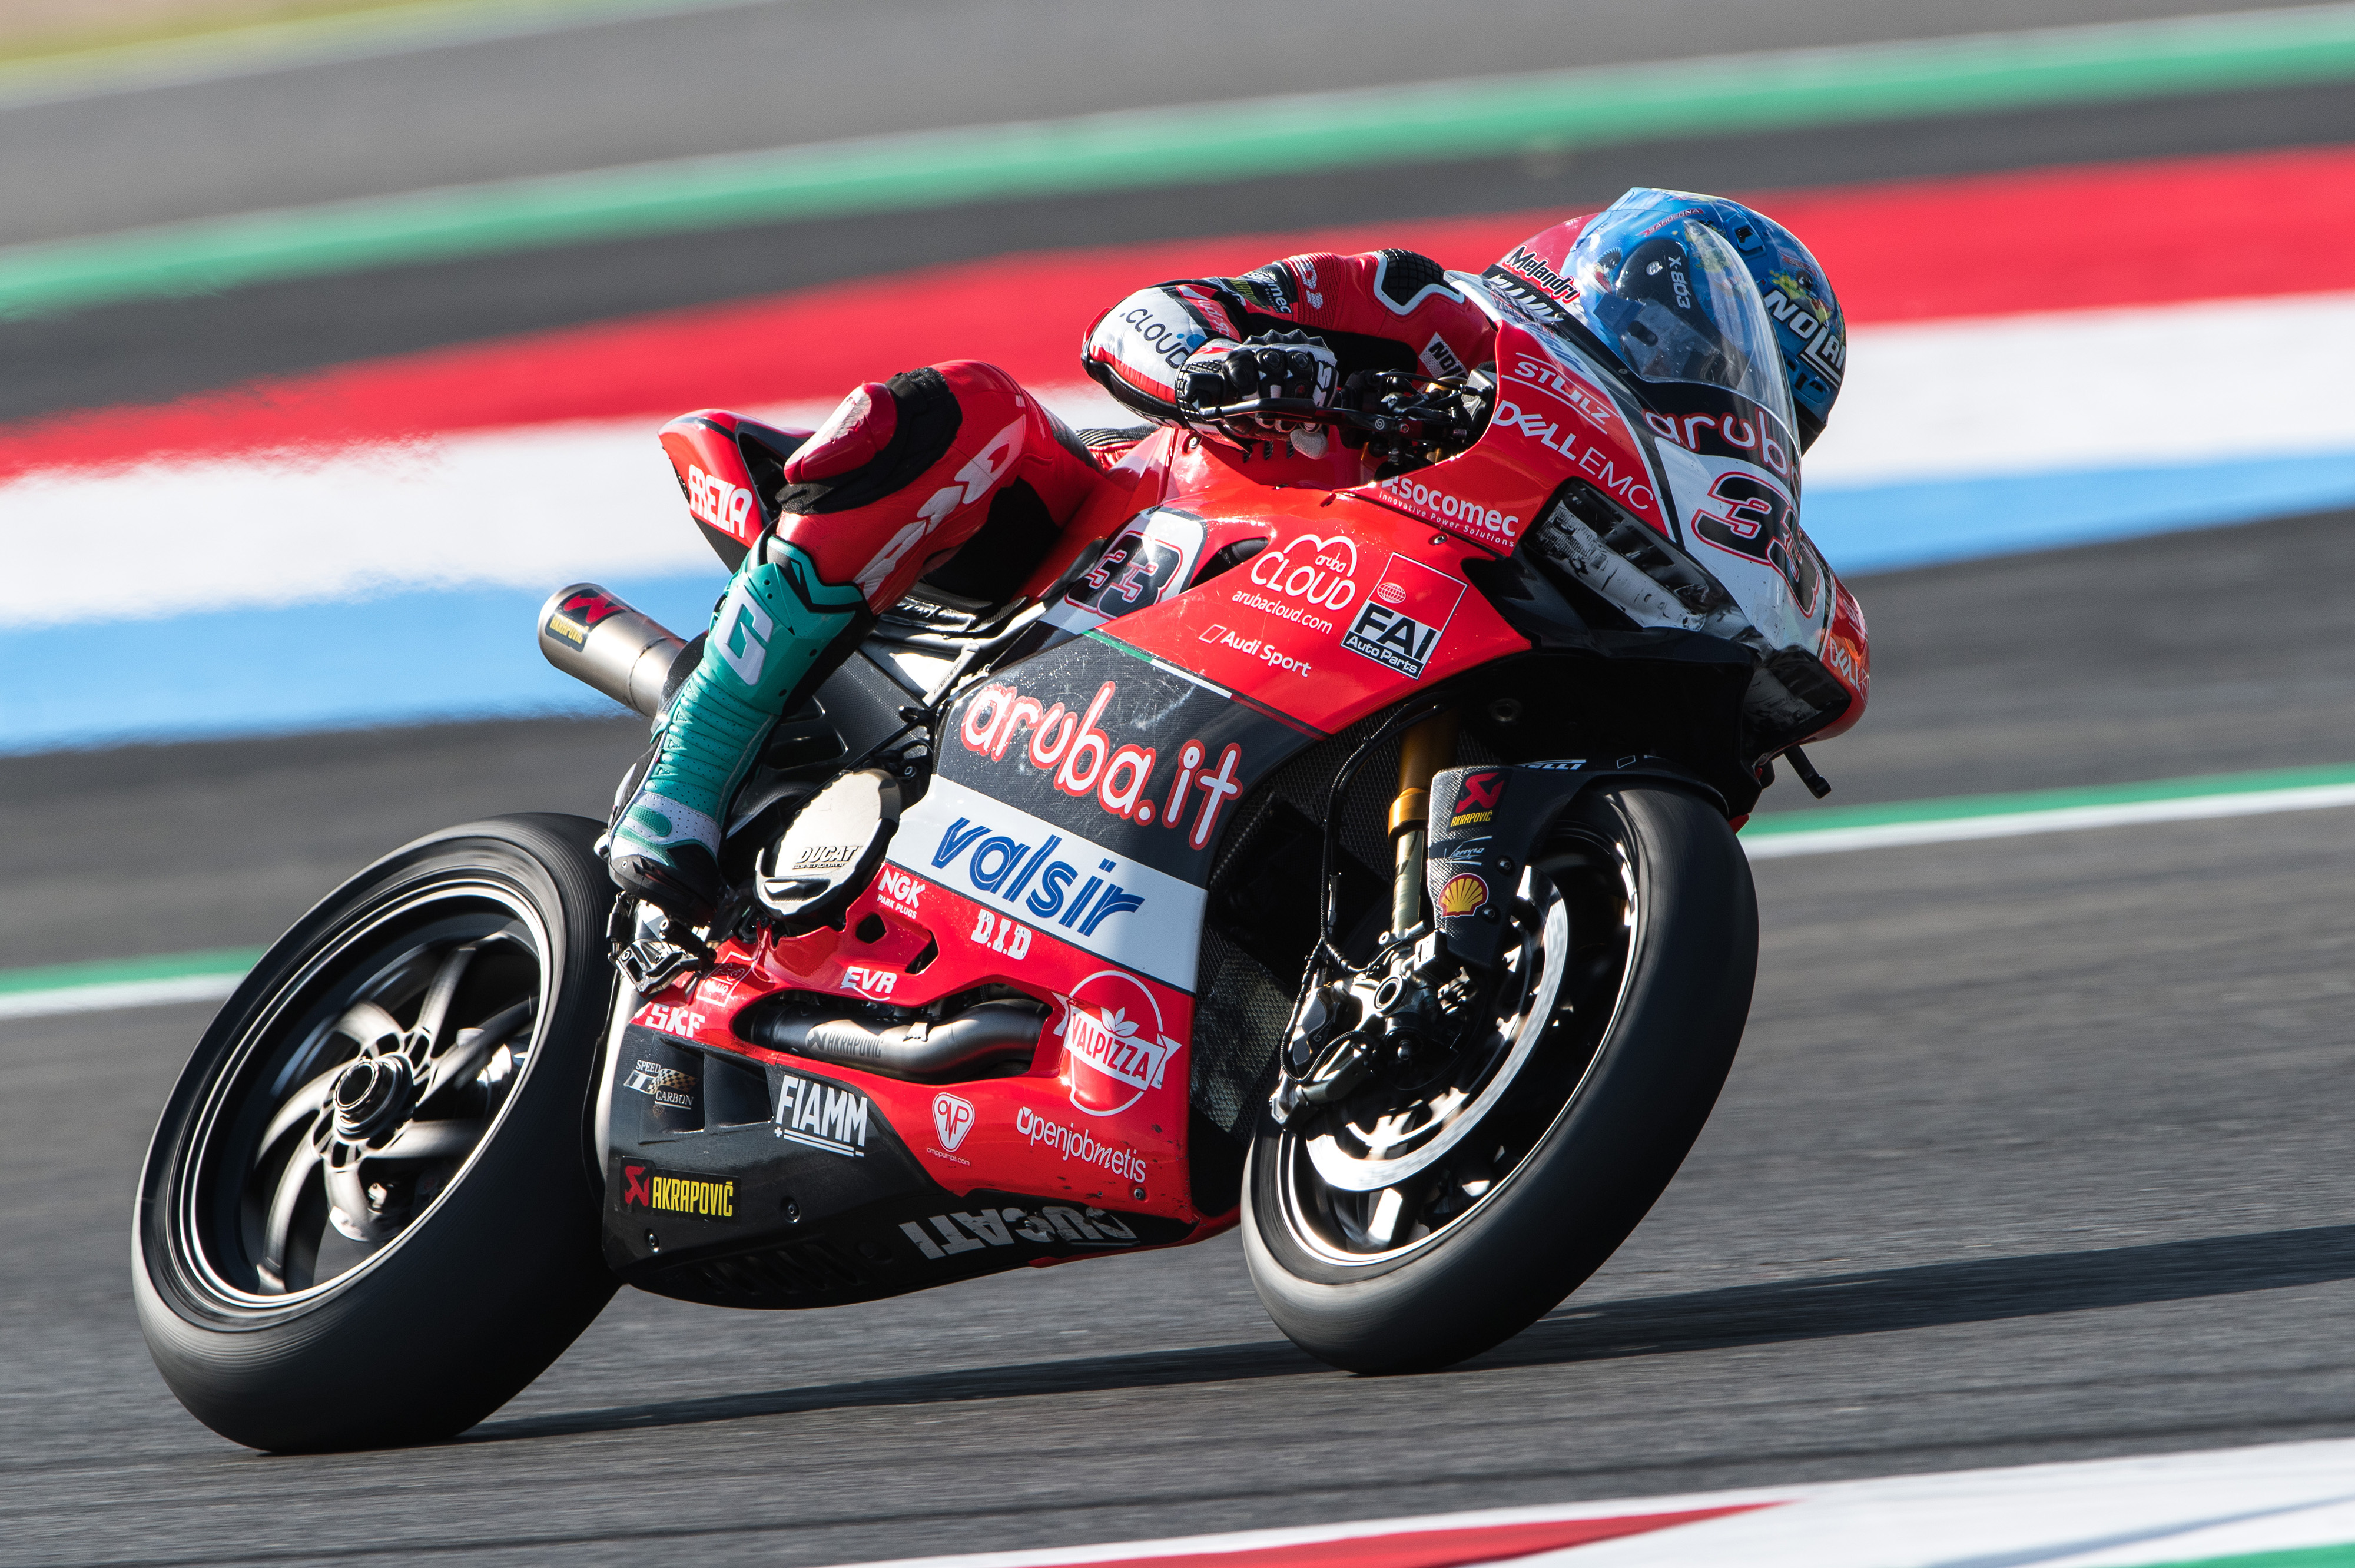 Davies 5th and Melandri 6th in Race 1 at Magny Cours with